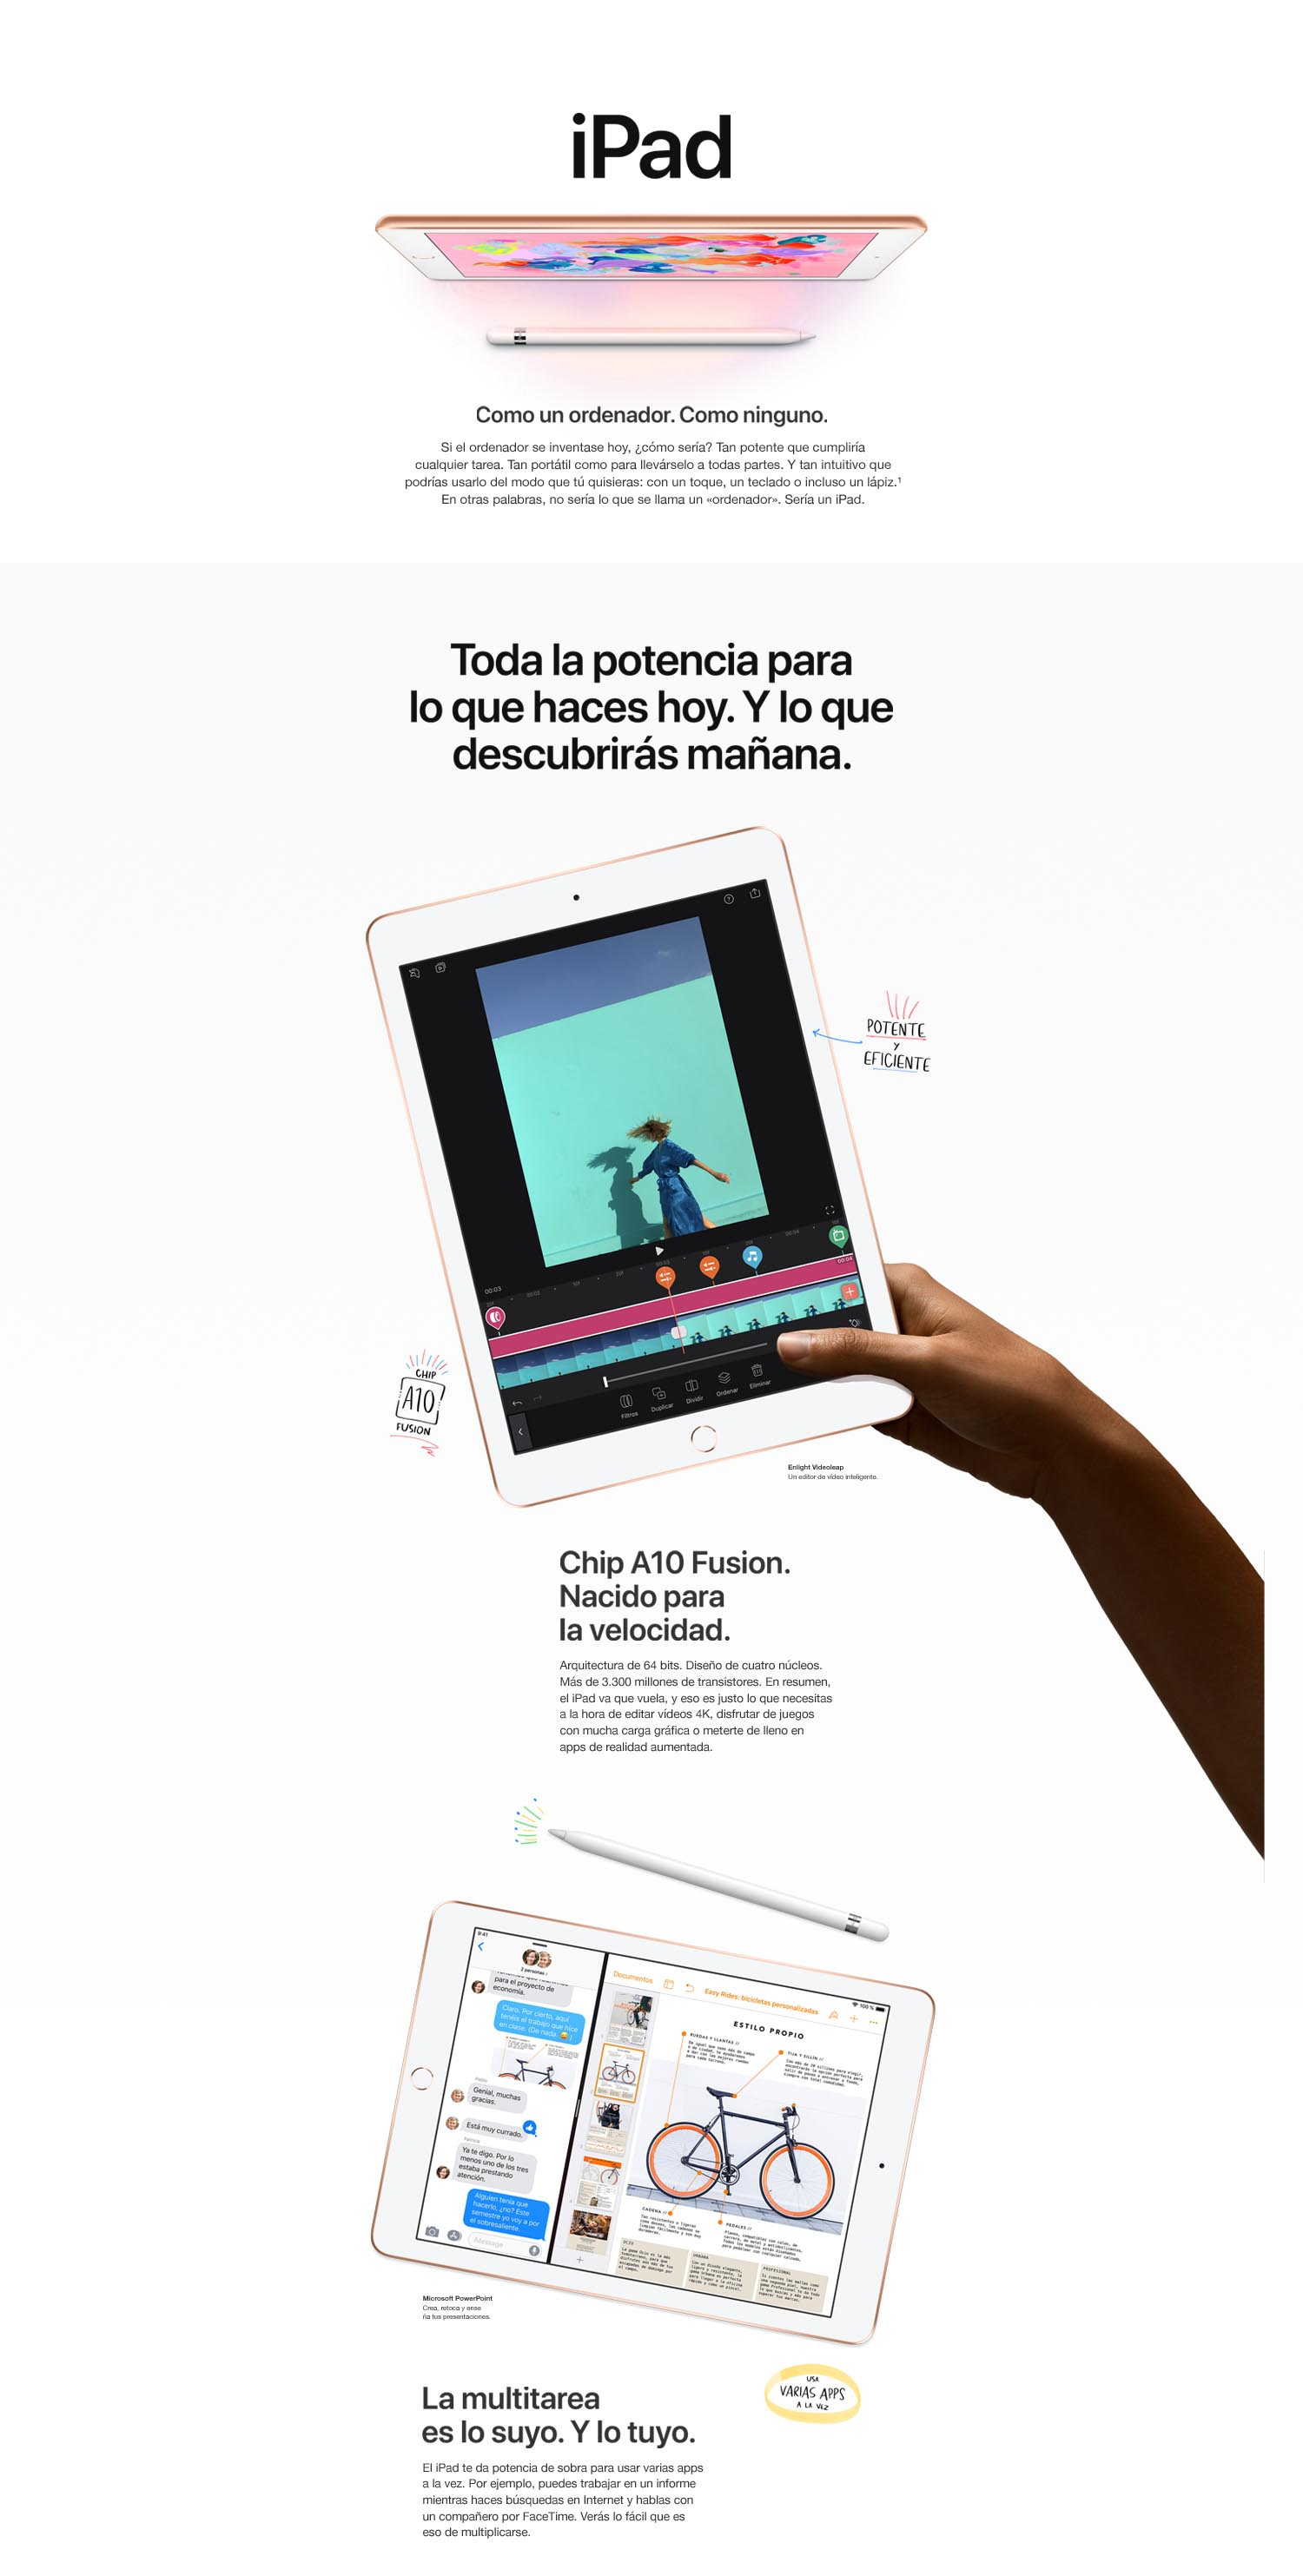 Compare Productos de Apple iPad